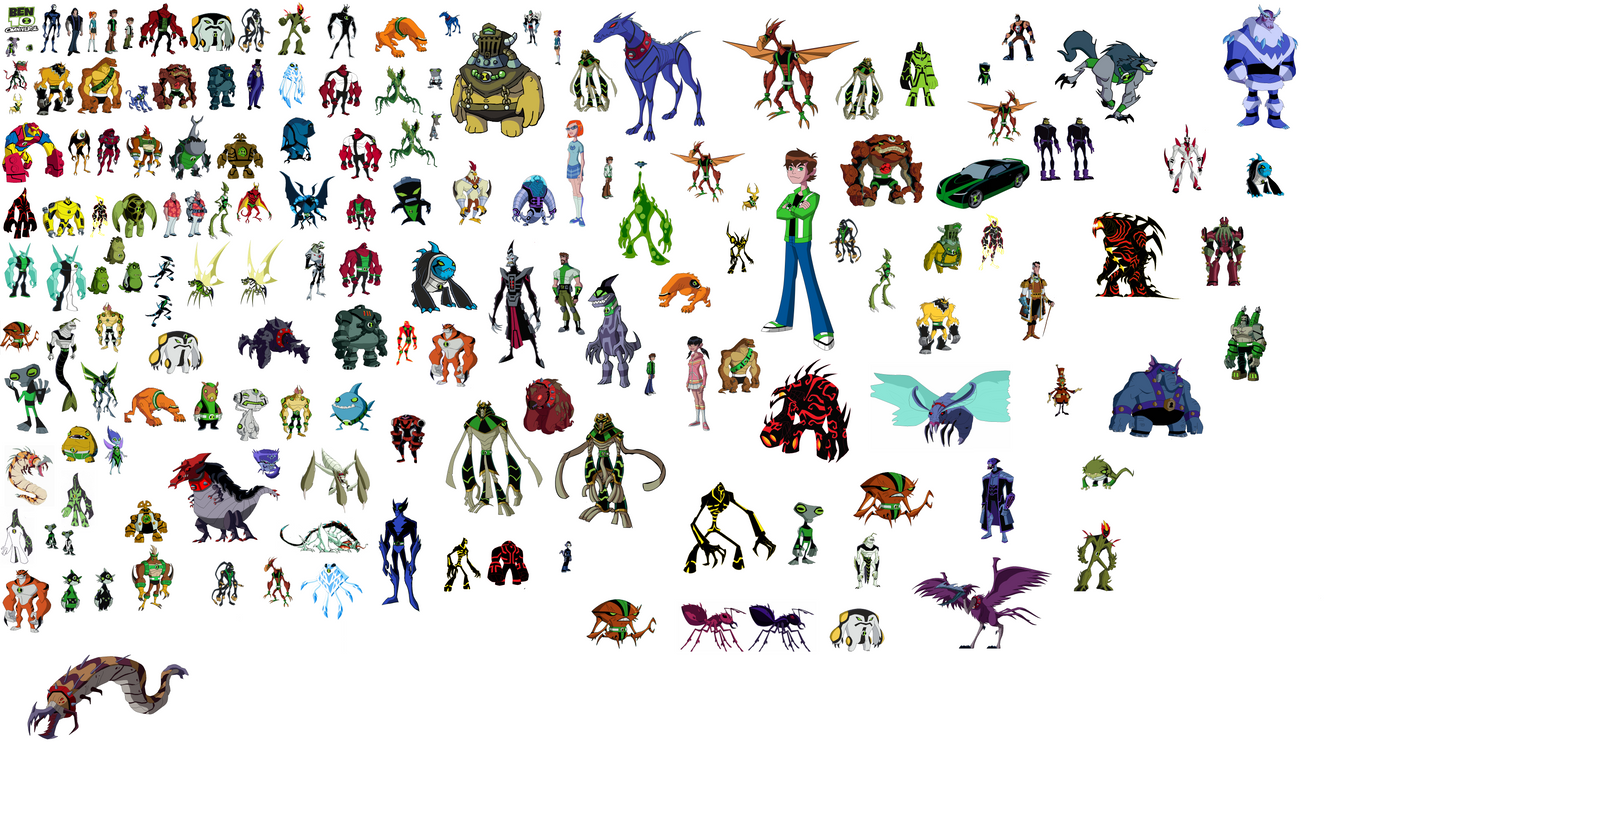 ben 10 all aliens name and images many hd wallpaper